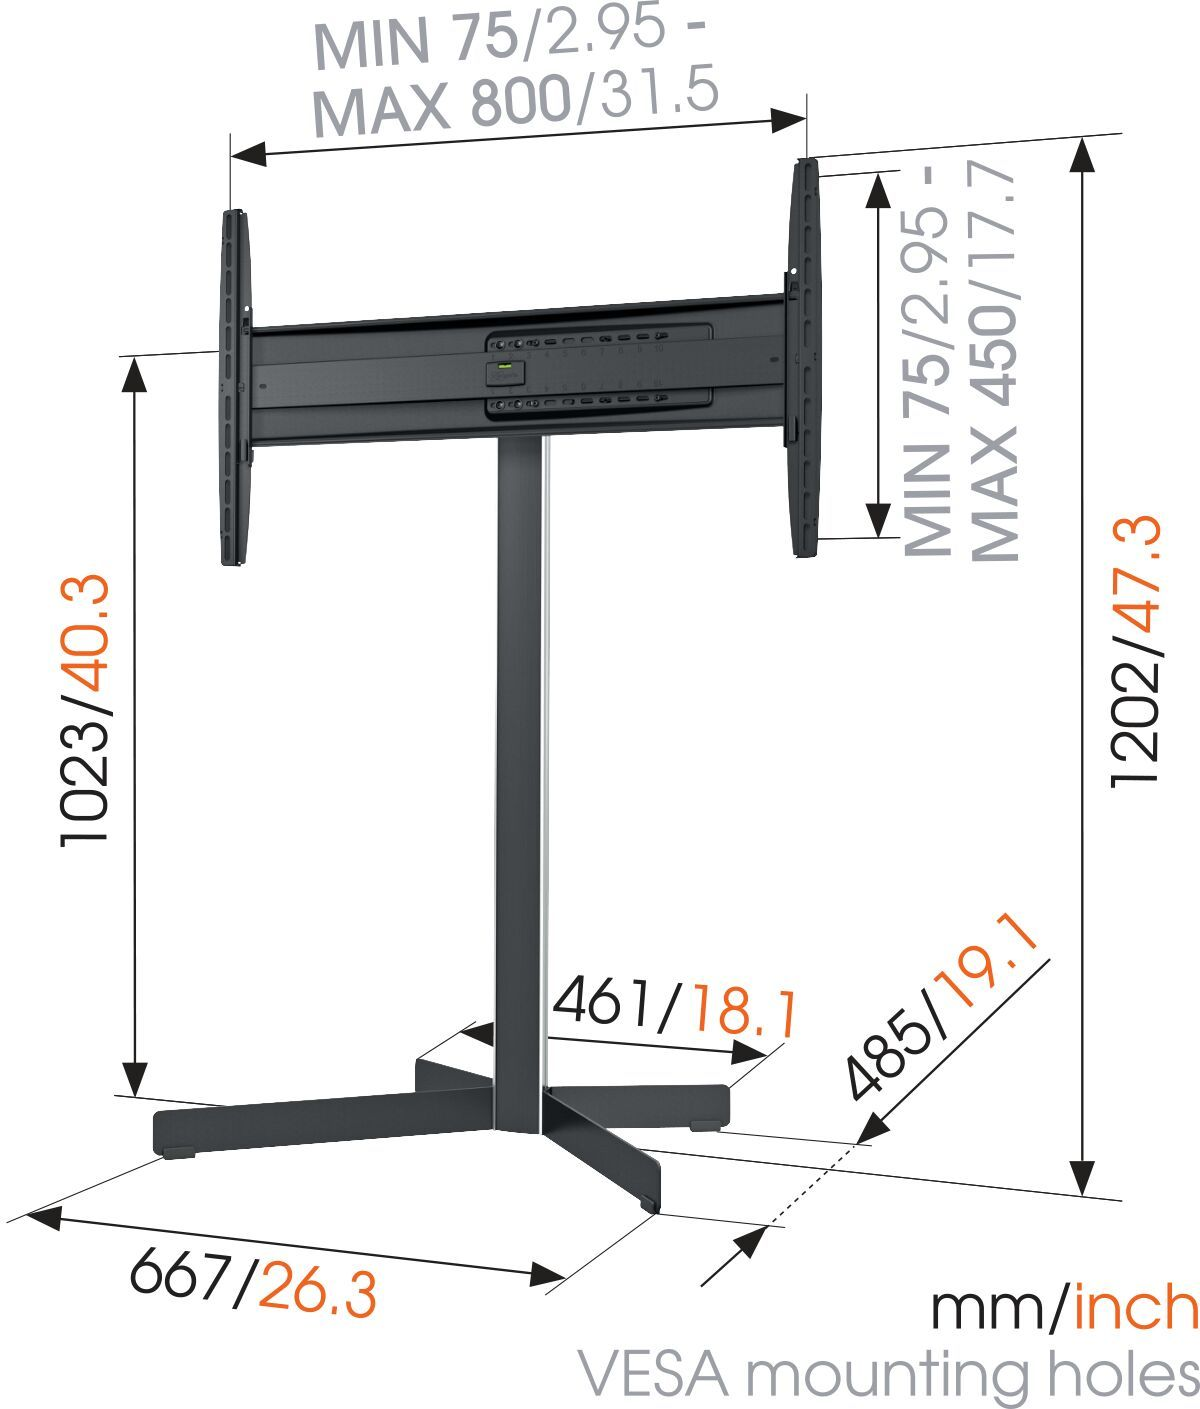 Vogel's EFF 8330 TV Floor Stand - Suitable for 40 up to 65 inch TVs up to 45 kg - Dimensions